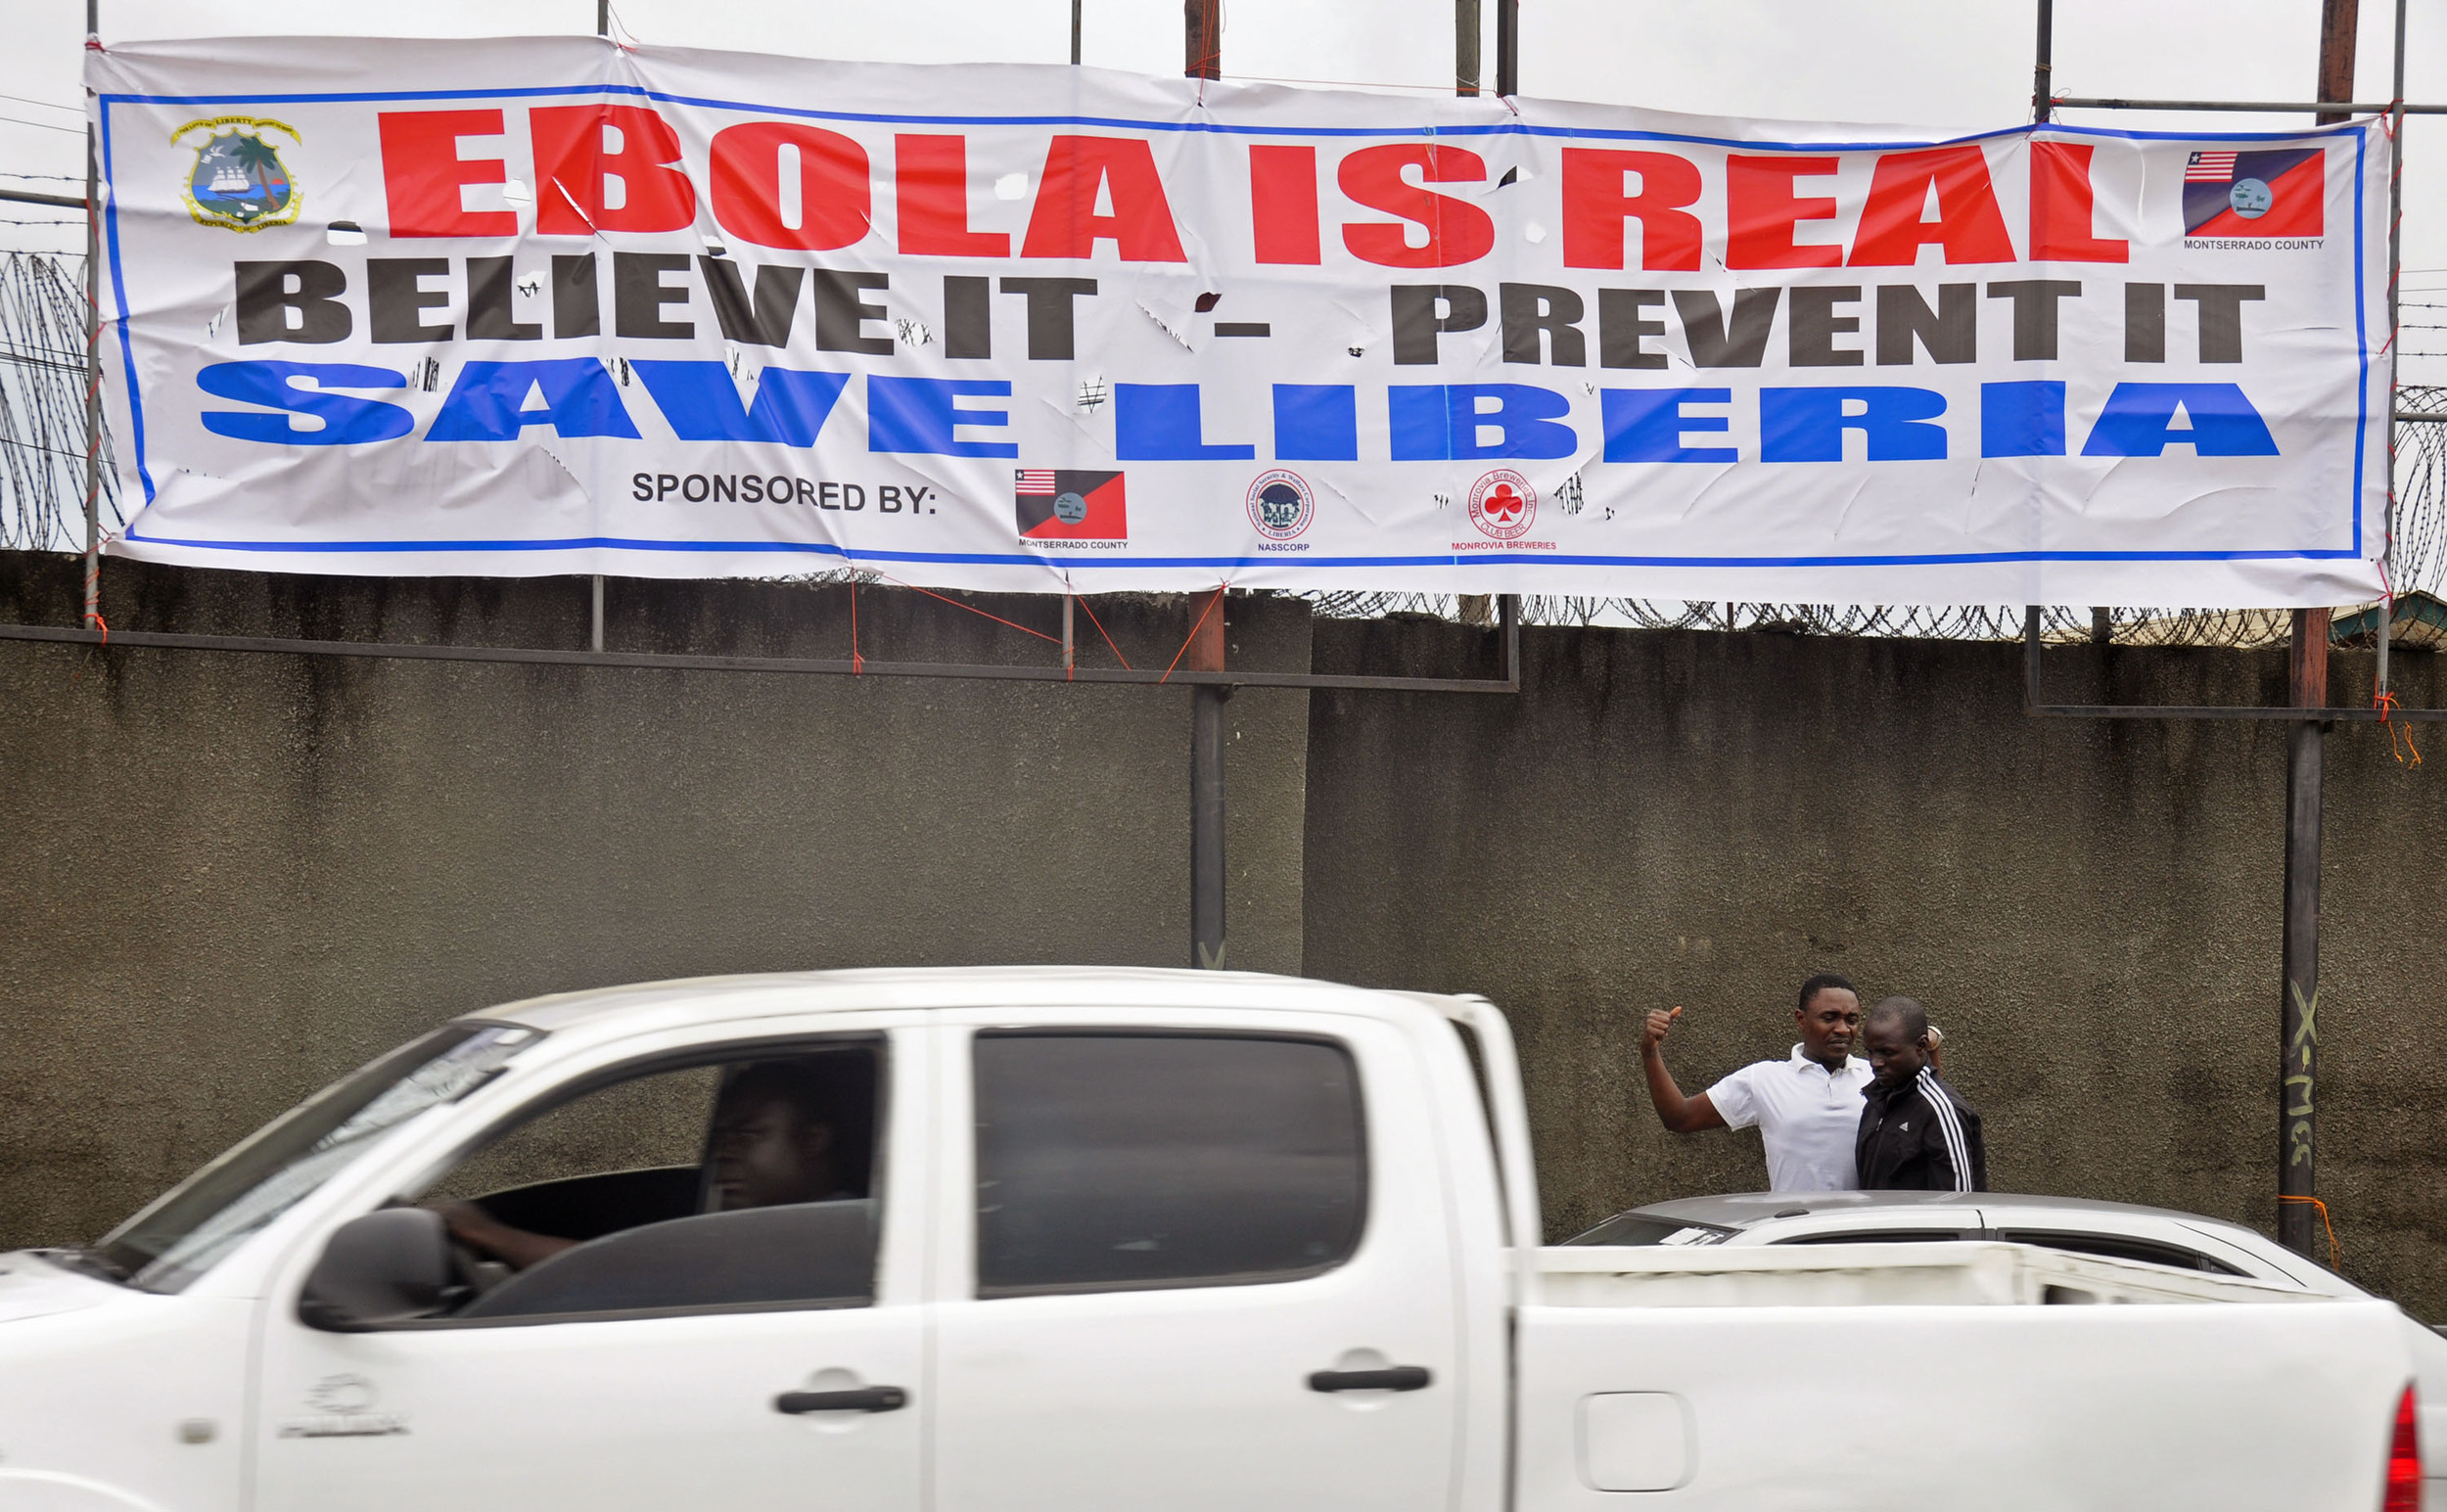 https://i2.wp.com/www.blogcdn.com/slideshows/images/slides/283/175/6/S2831756/slug/l/liberia-west-africa-ebola-1.jpg